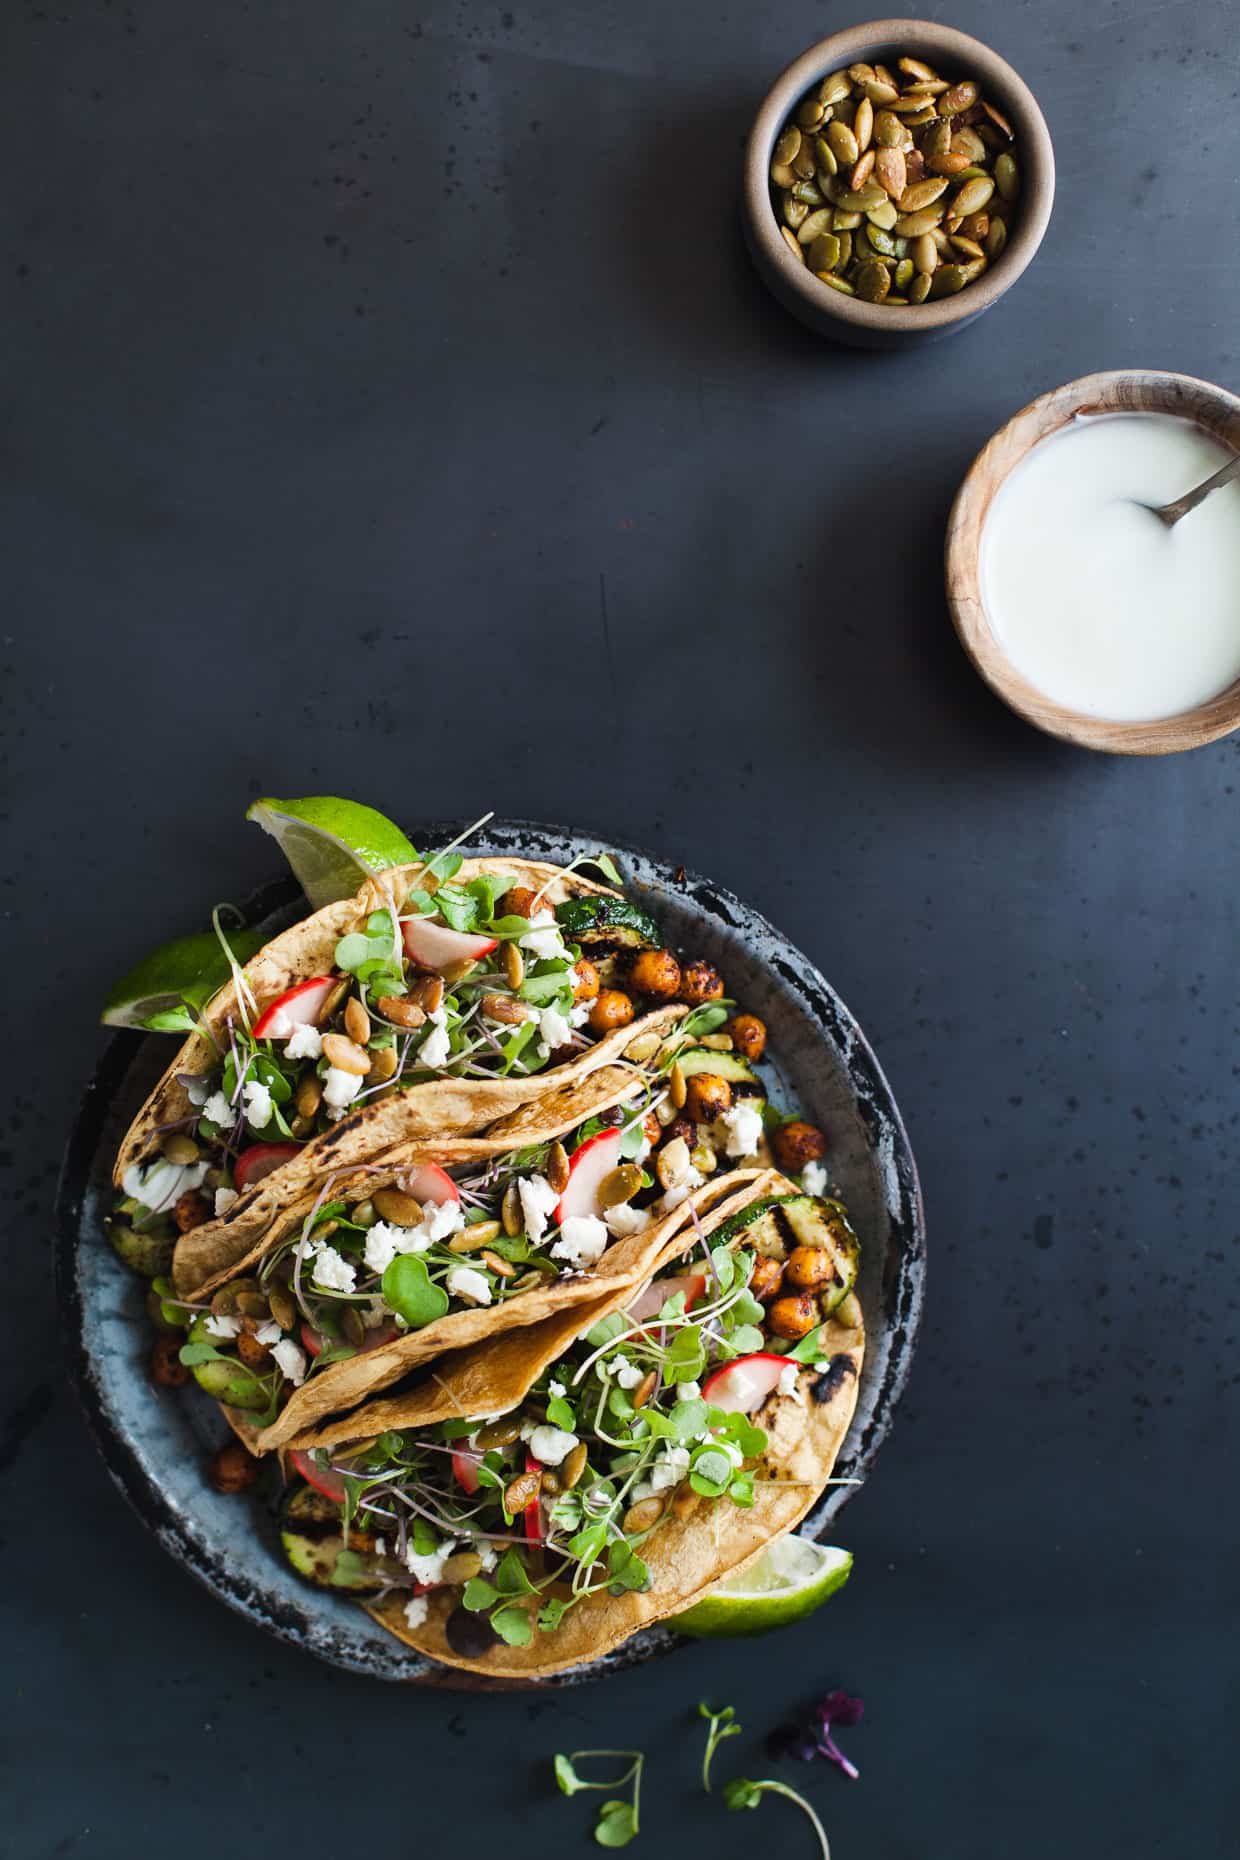 Mole-Spiced Chickpea & Grilled Zucchini Tacos